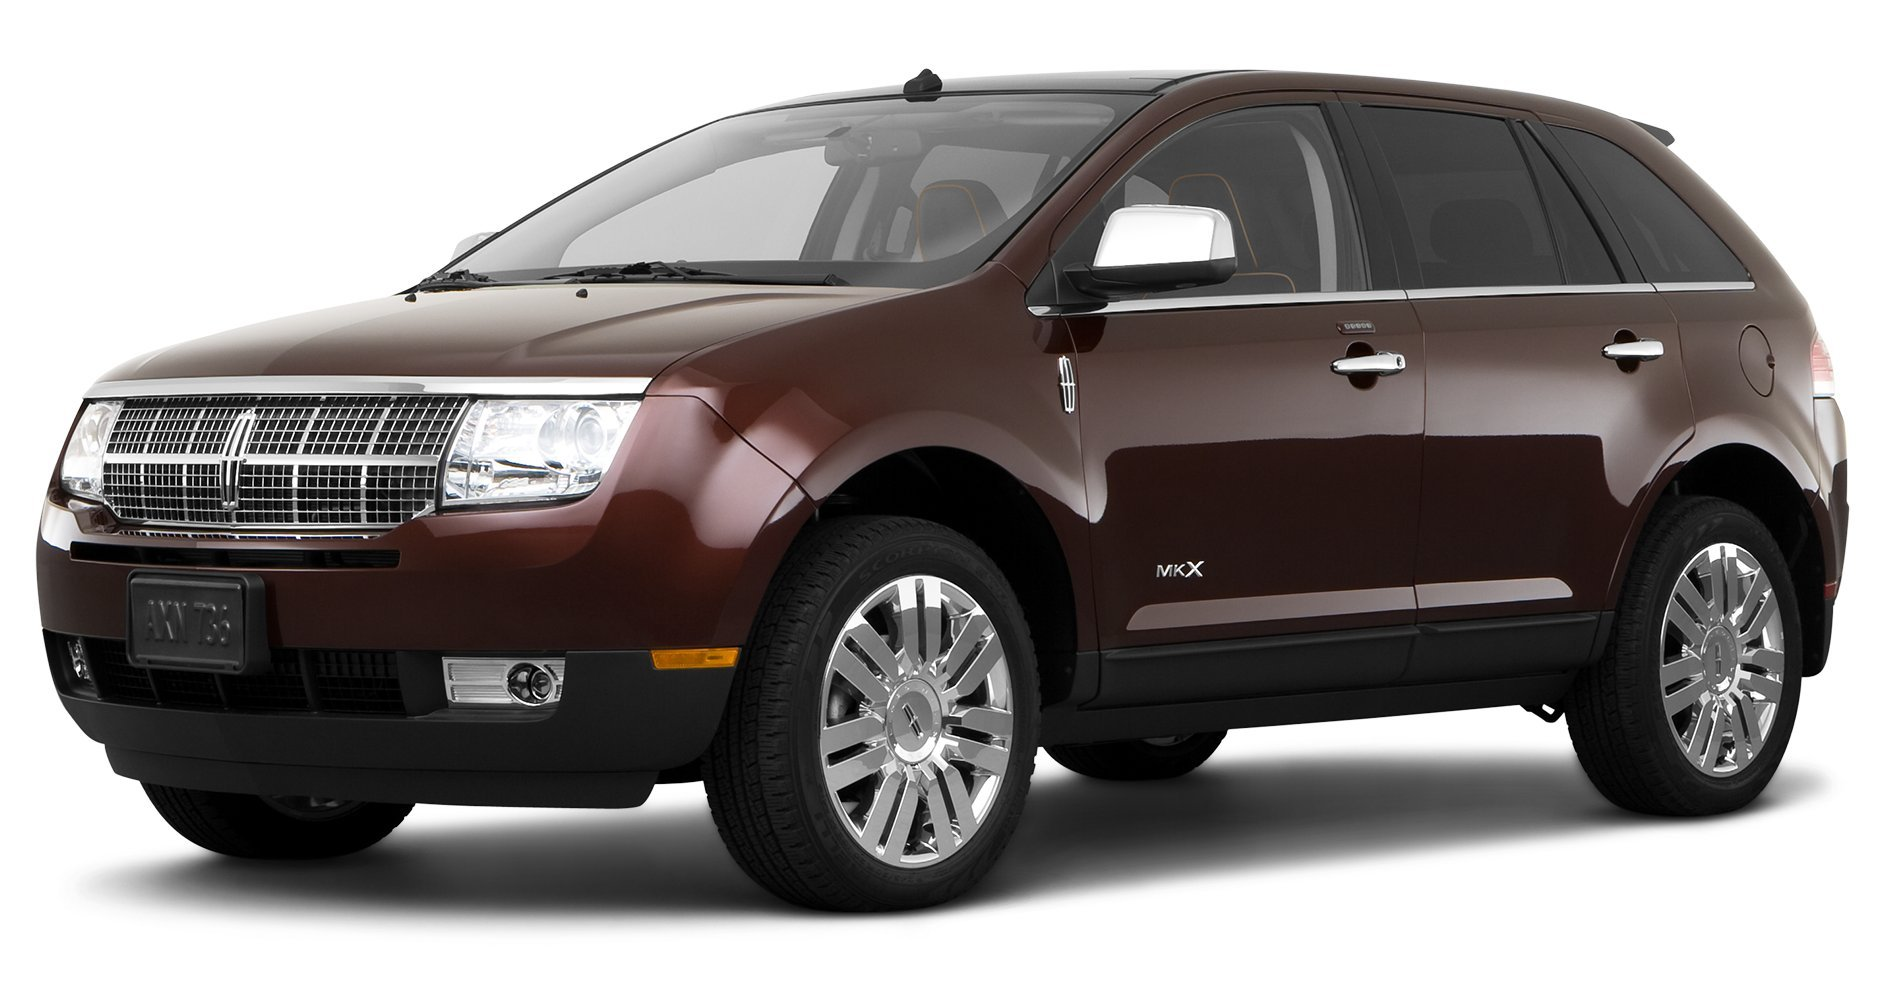 2010 lincoln mkx reviews images and specs vehicles. Black Bedroom Furniture Sets. Home Design Ideas